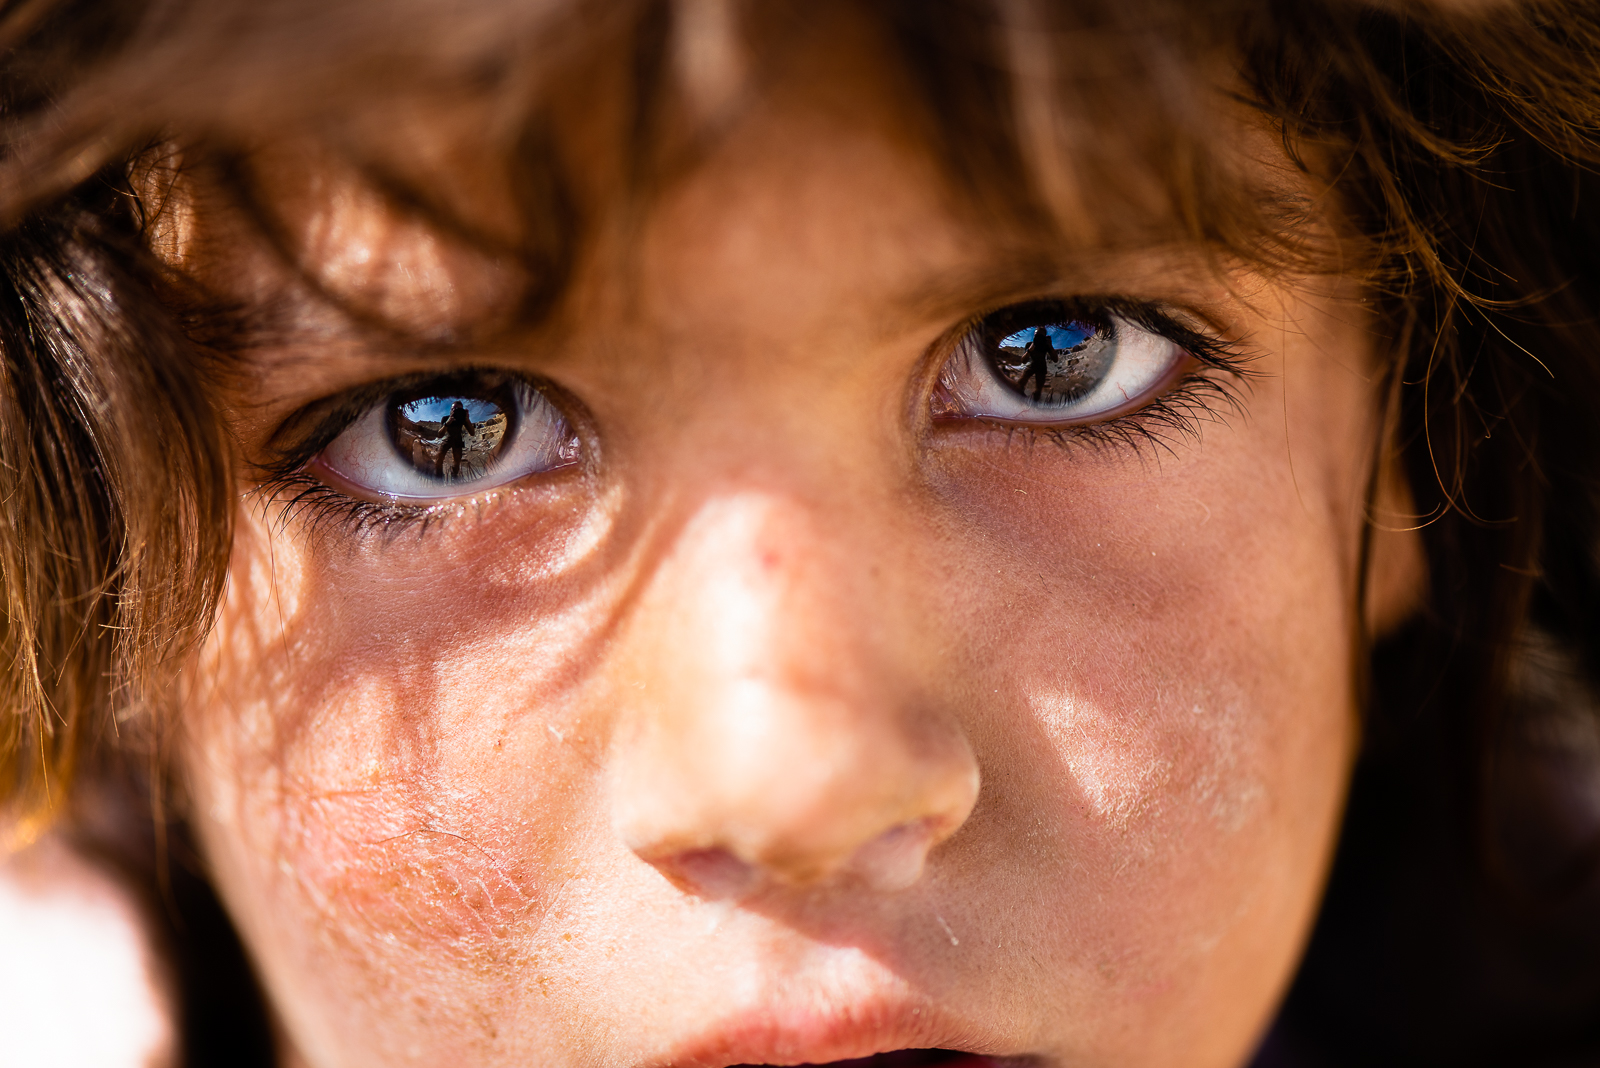 Little boy with the cheeks burned by the sunlight. Mount Sinjar